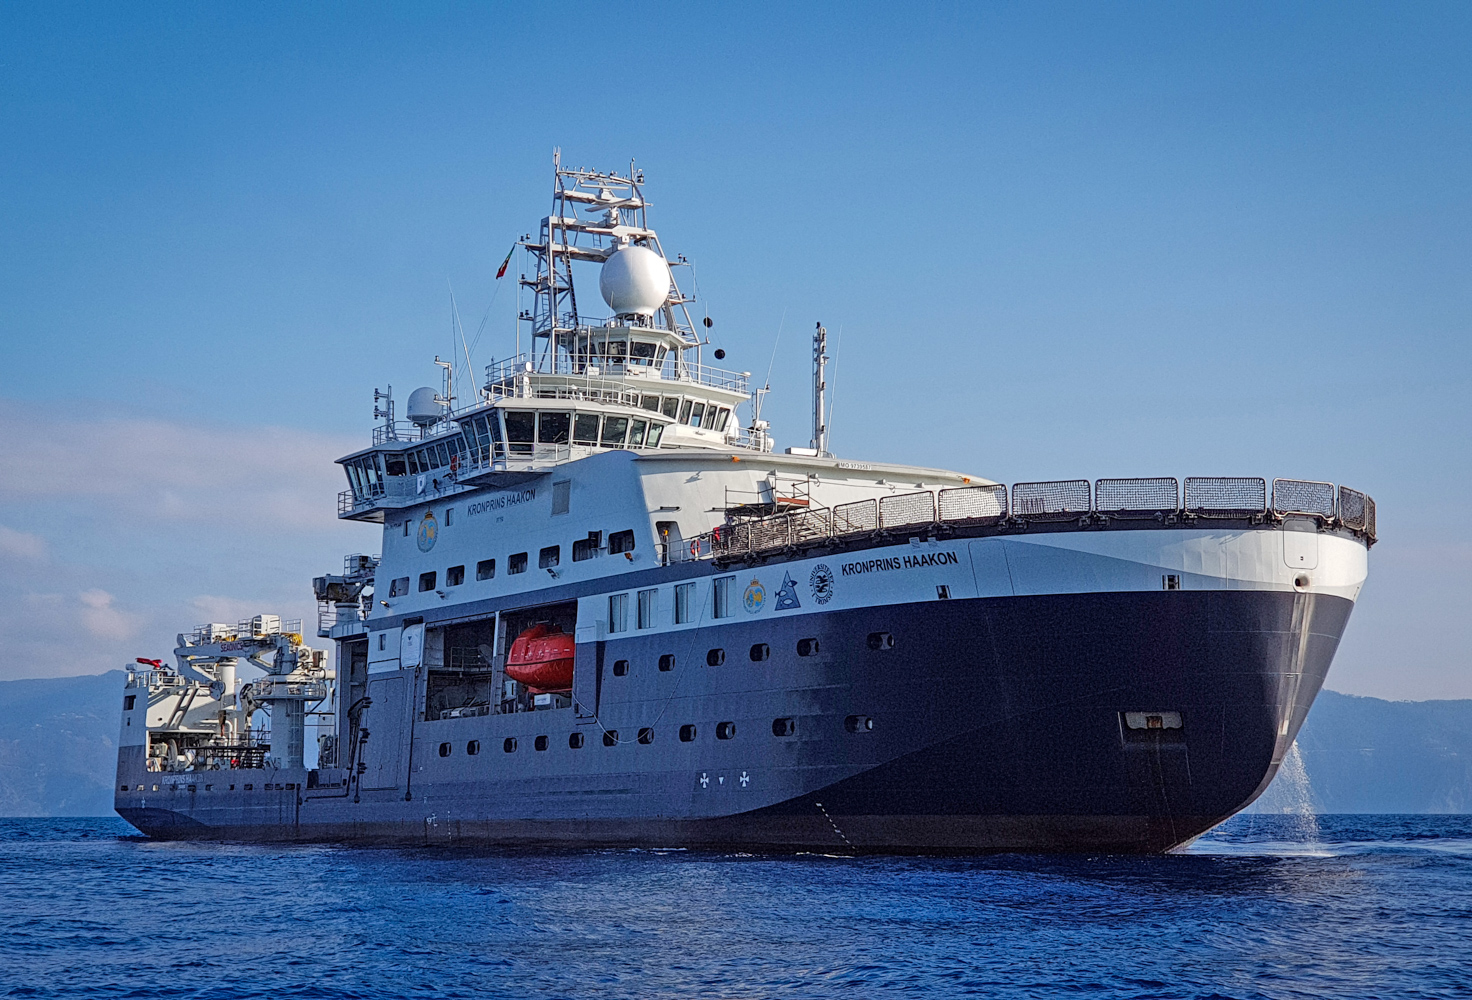 The new research vessel  Kronprins Haakon  will meet researchers' existing and future needs to visit, monitor and collect data in ice-covered and open waters at the far reaches of the globe, north and south, regardless of the season. JONAA© Øystein Mikelborg / Norwegian Polar Institute